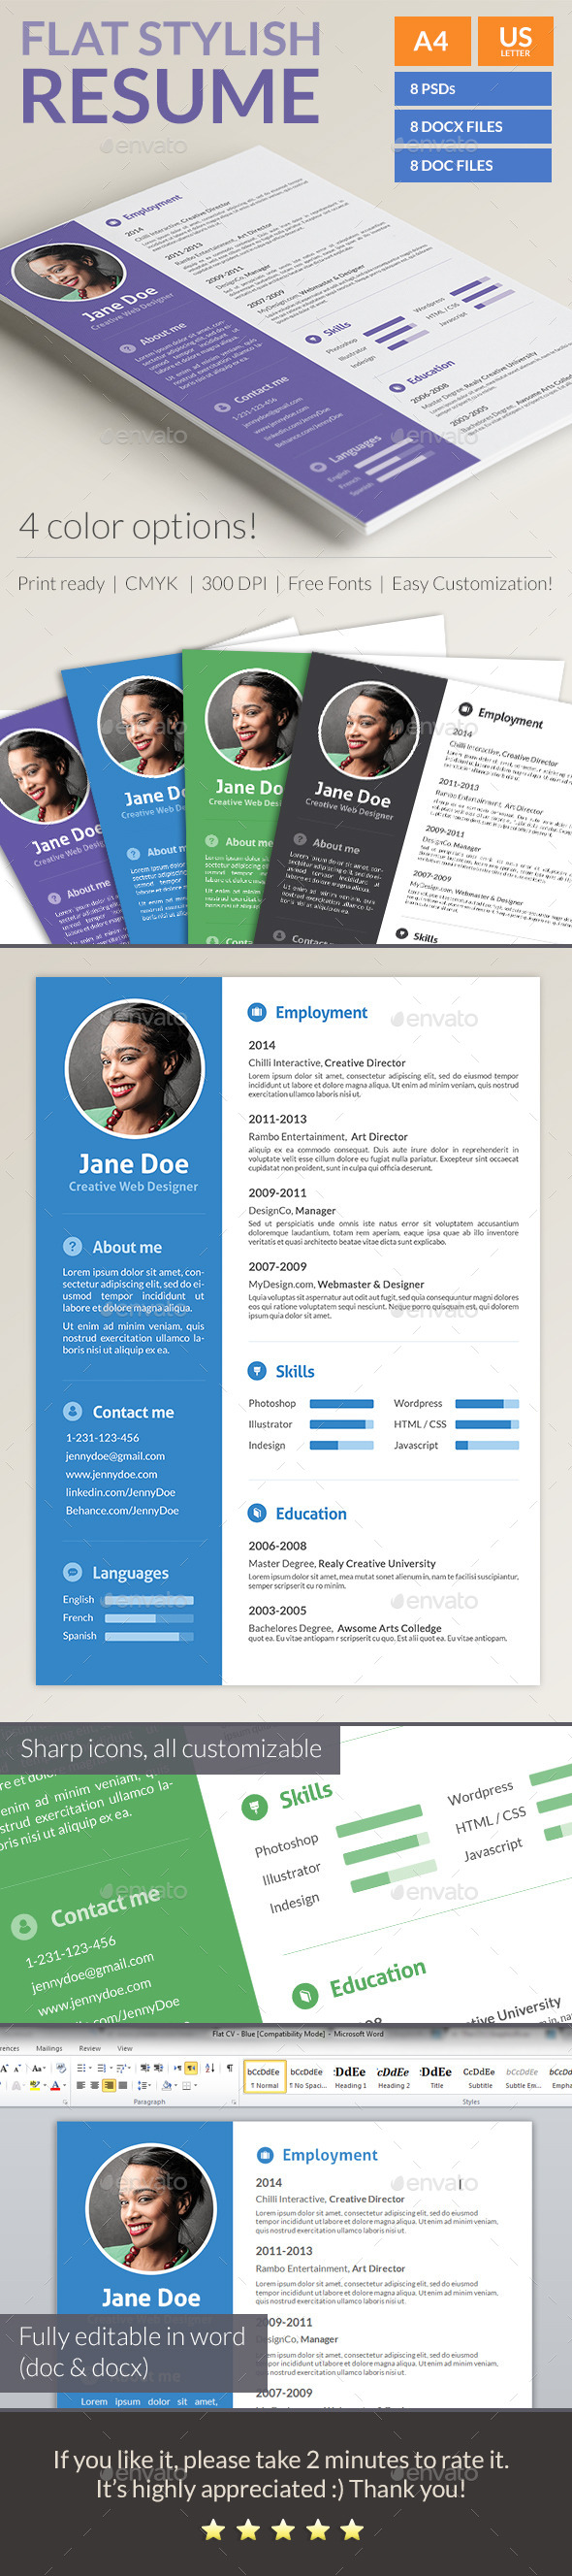 Stylish Flat Resume